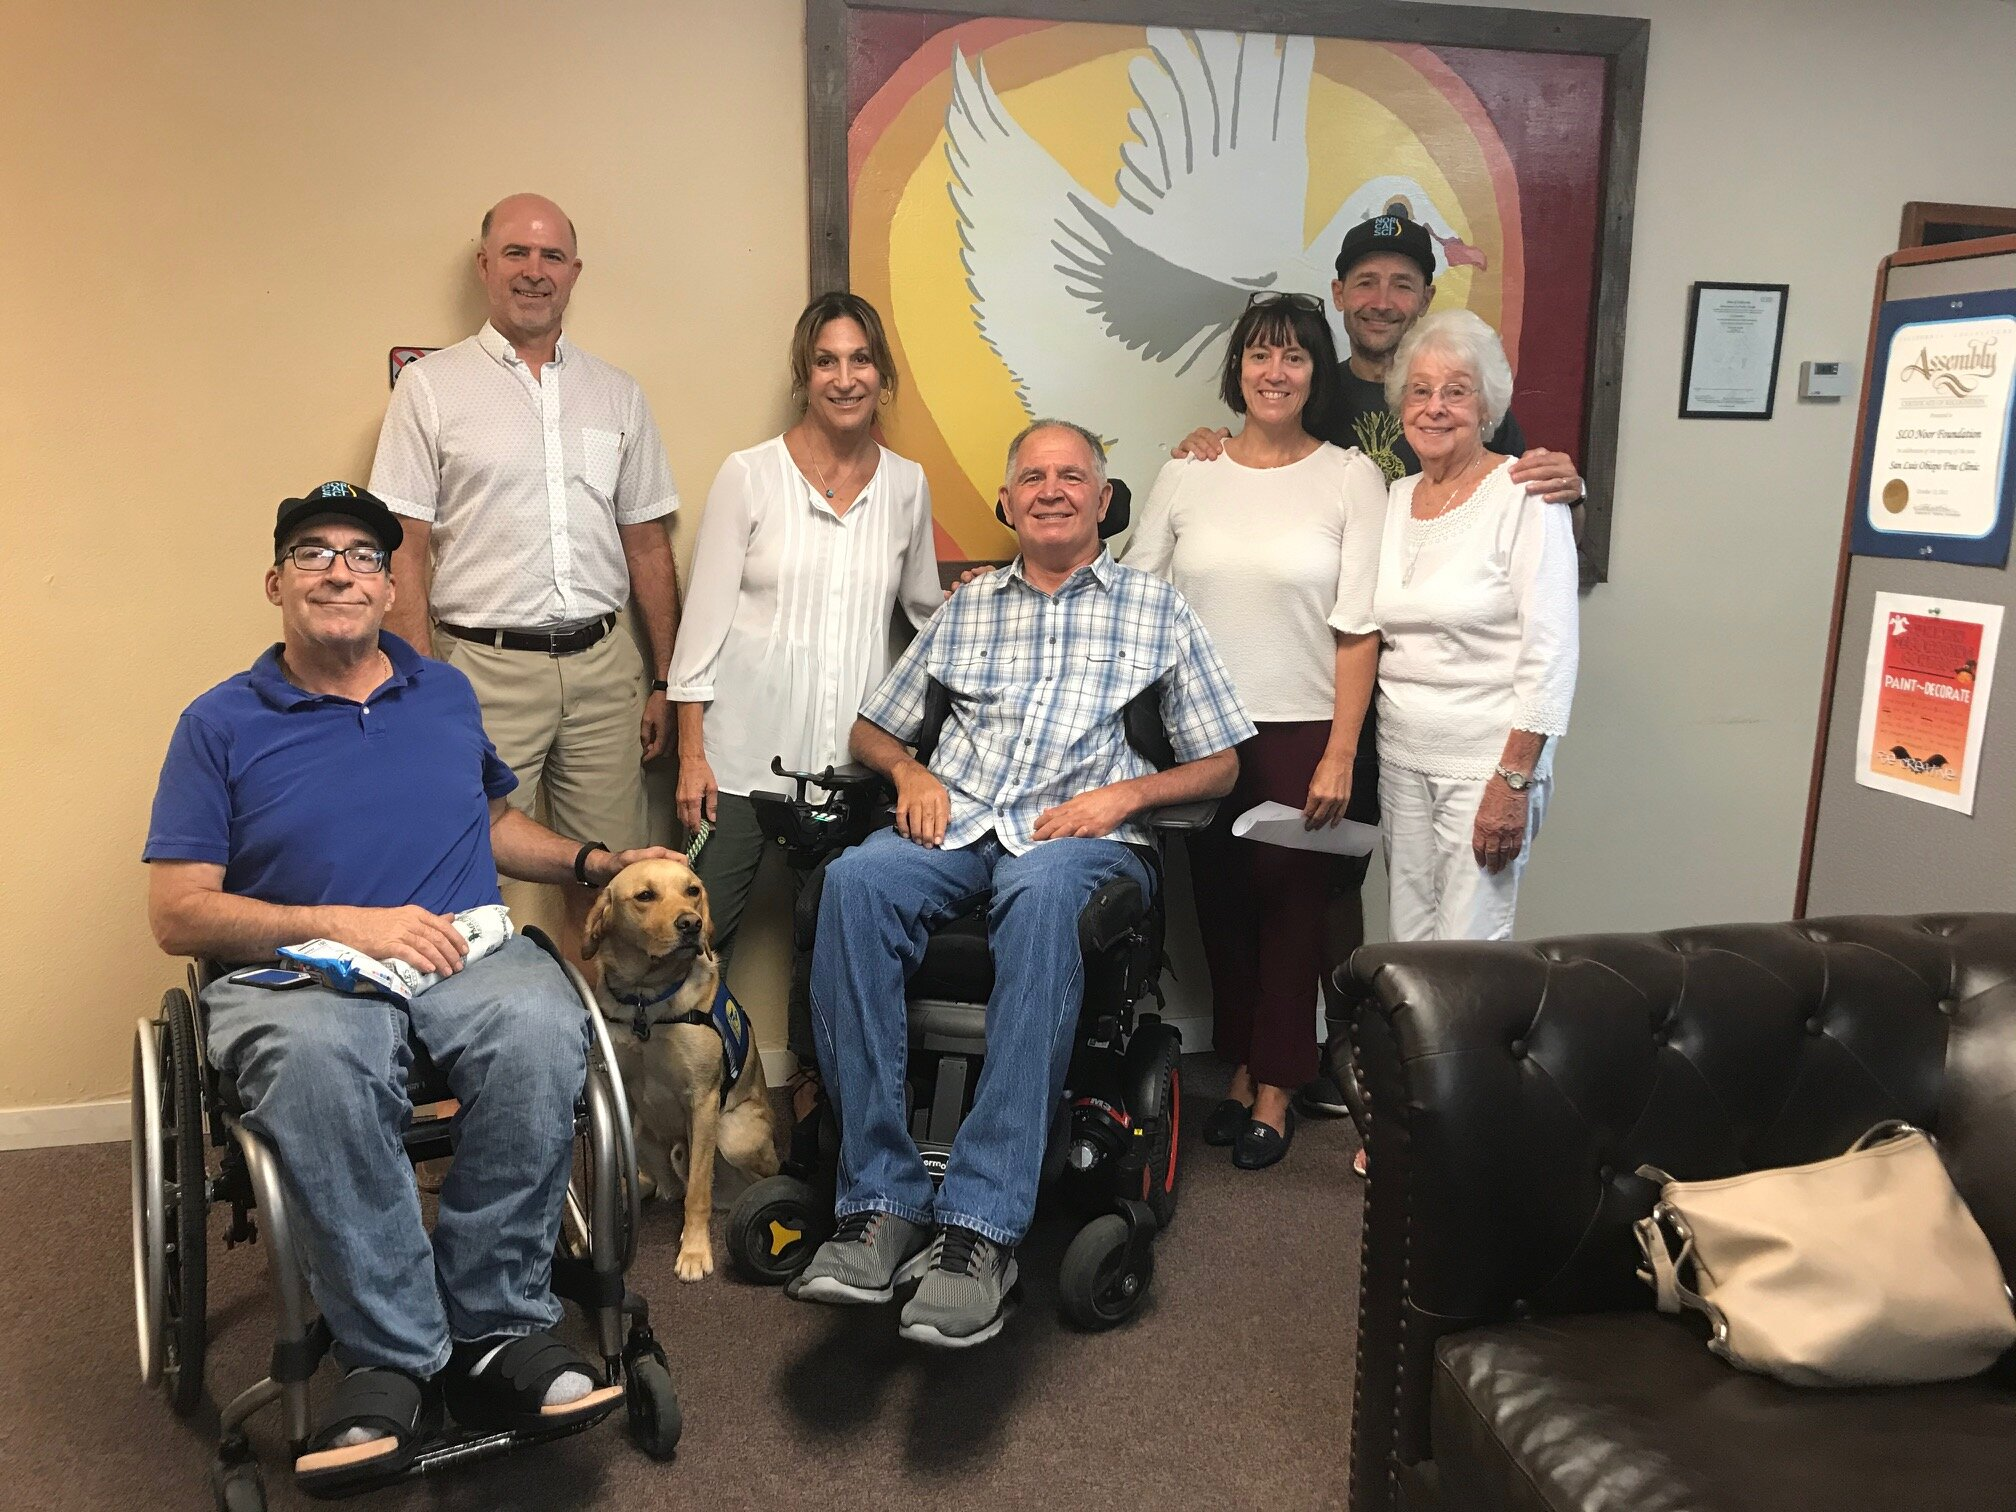 From left to right: Carl McGrew, Kyle Smith, Carole Adler Hughes, Michael Ward, Rebecca Hummel-Moore, Mae MacDonald and Nick Struthers.